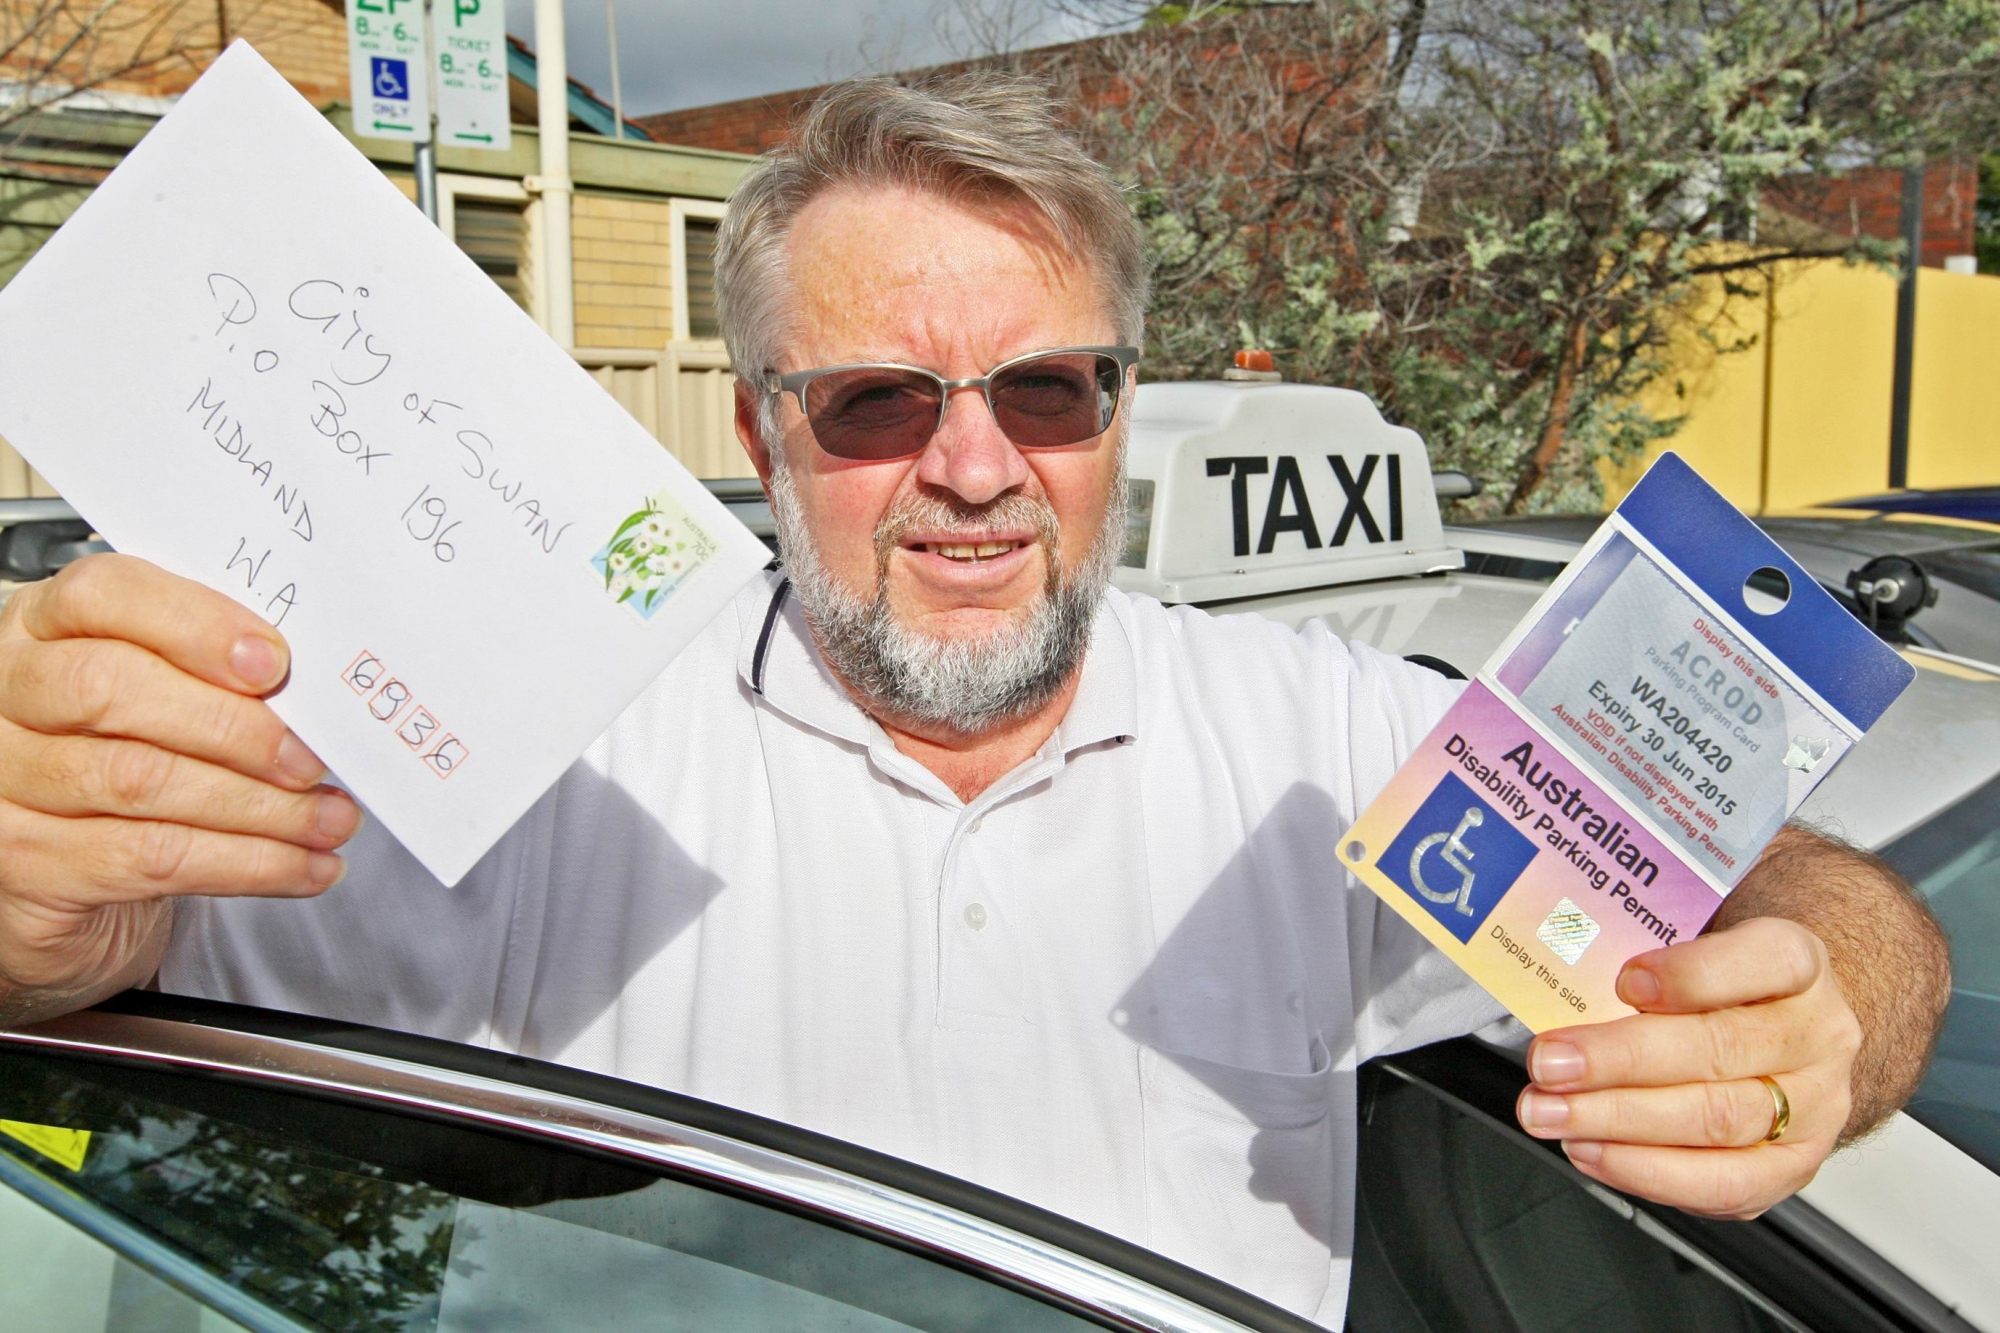 Mr Kuligowski with his disabled parking sticker. He received a fine for the five minutes he took to accompany a disabled woman to the Centrelink office in the rain, to prevent her from falling over.